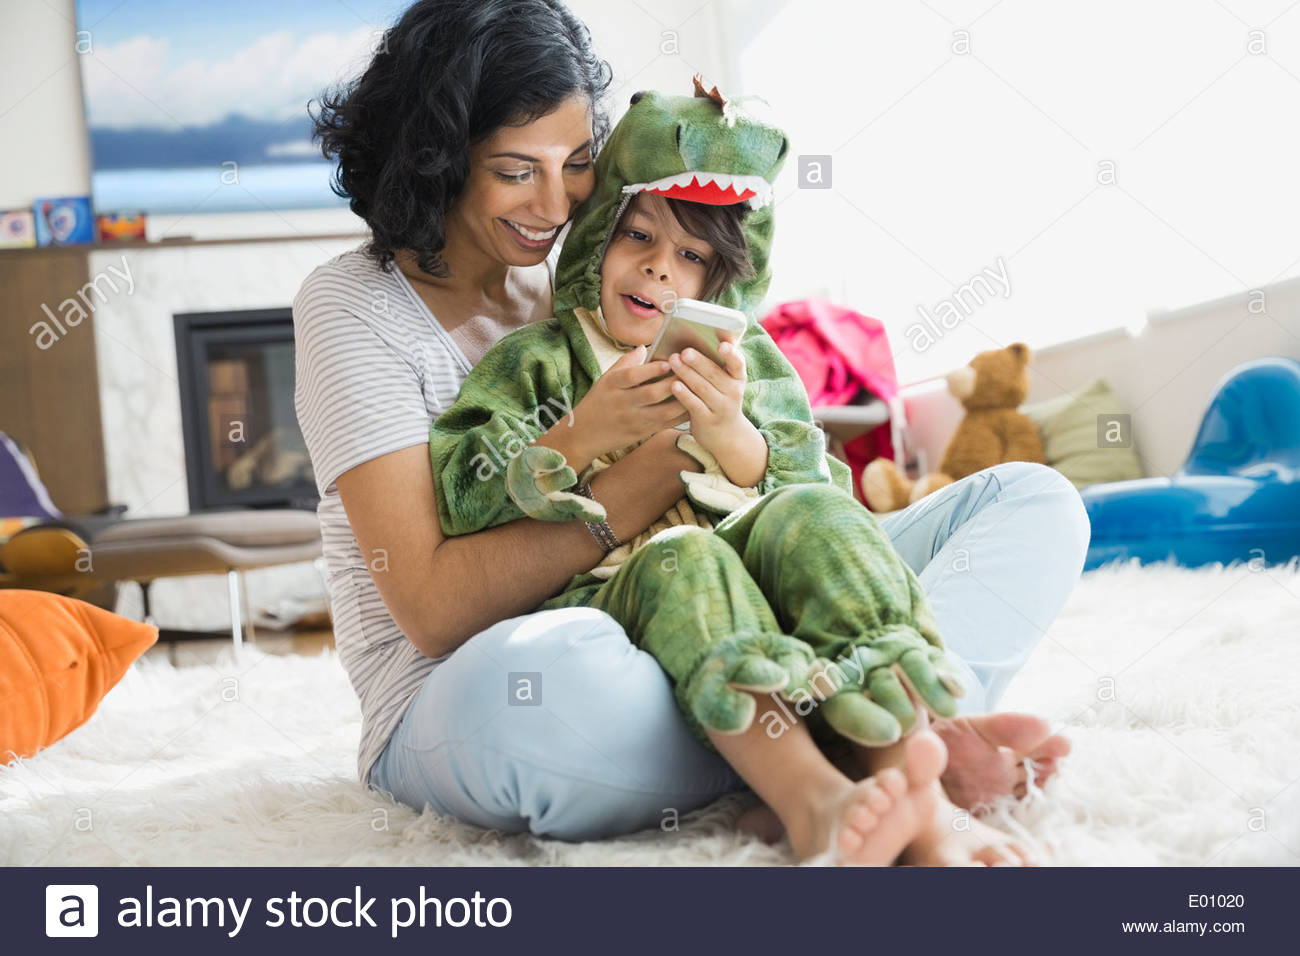 Mother holding son in dragon costume - Stock Image